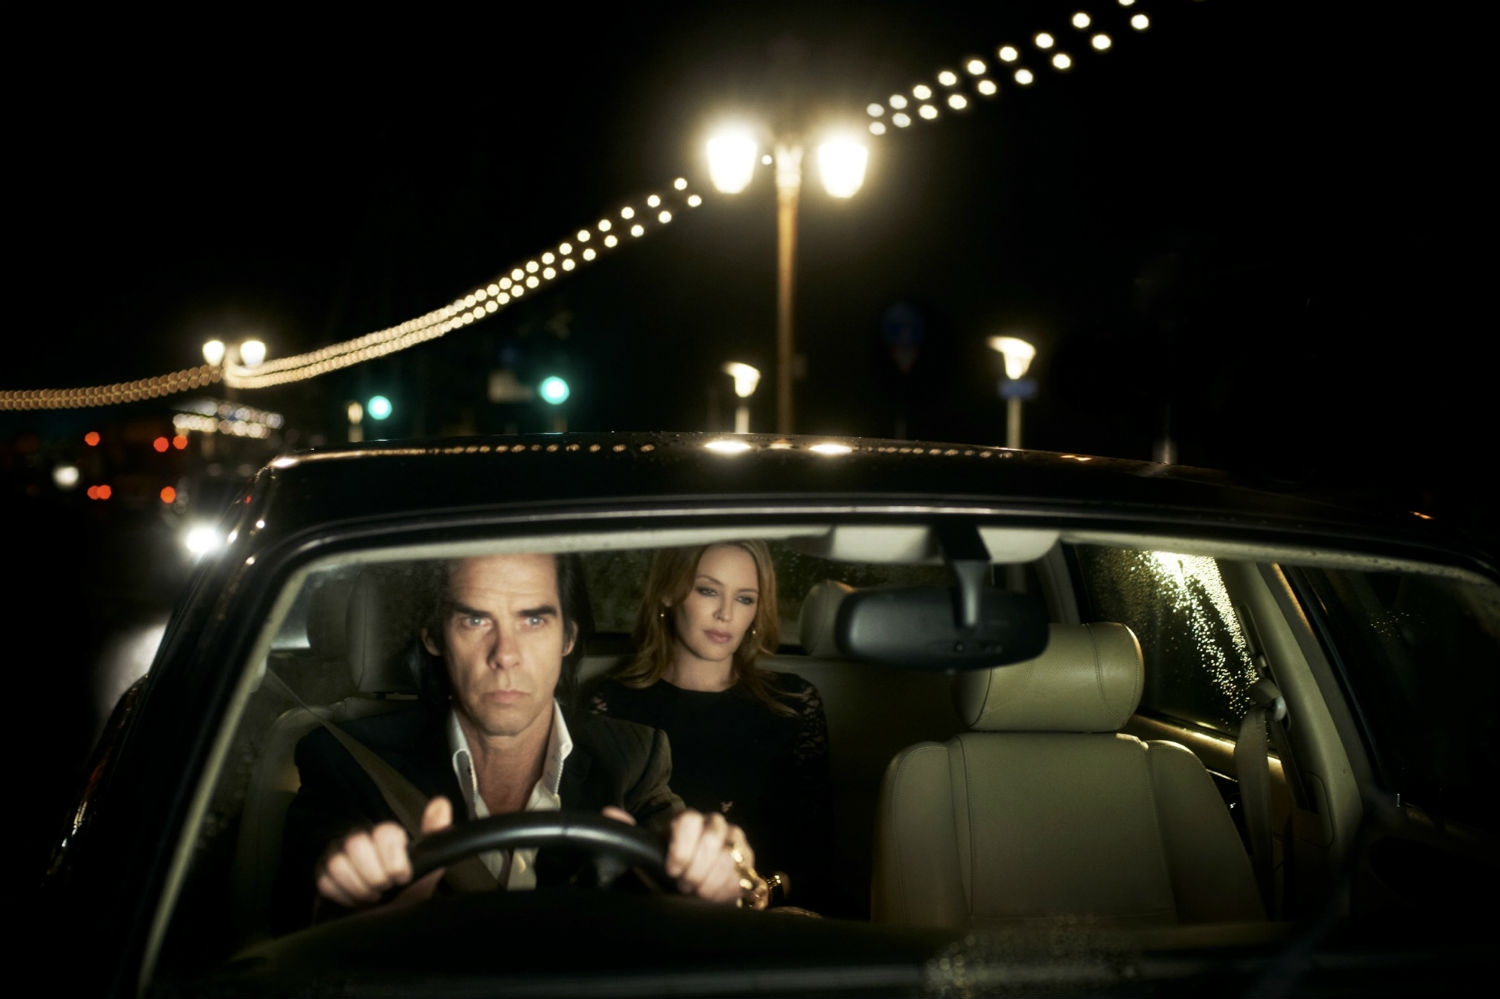 nick cave kylie minogue 20000 days on earth car